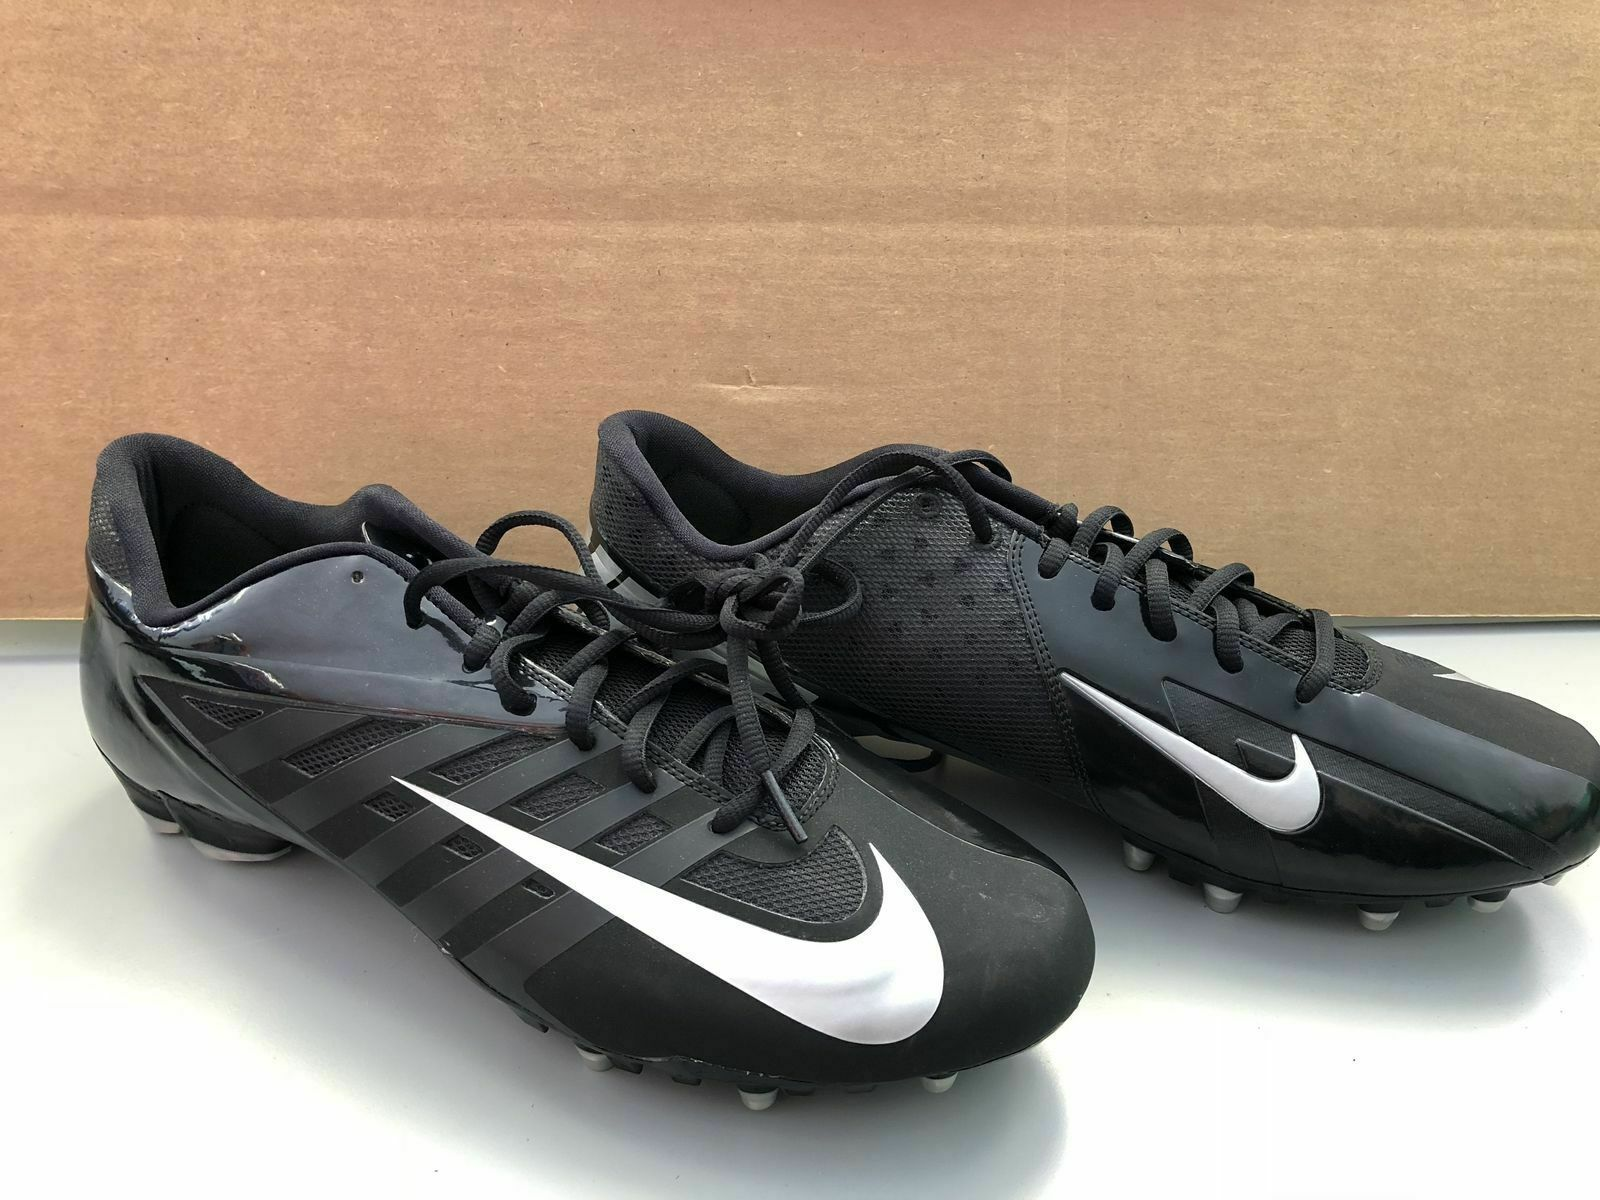 Primary image for Nike Vapor Pro Low 15.0 Size Football Cleats